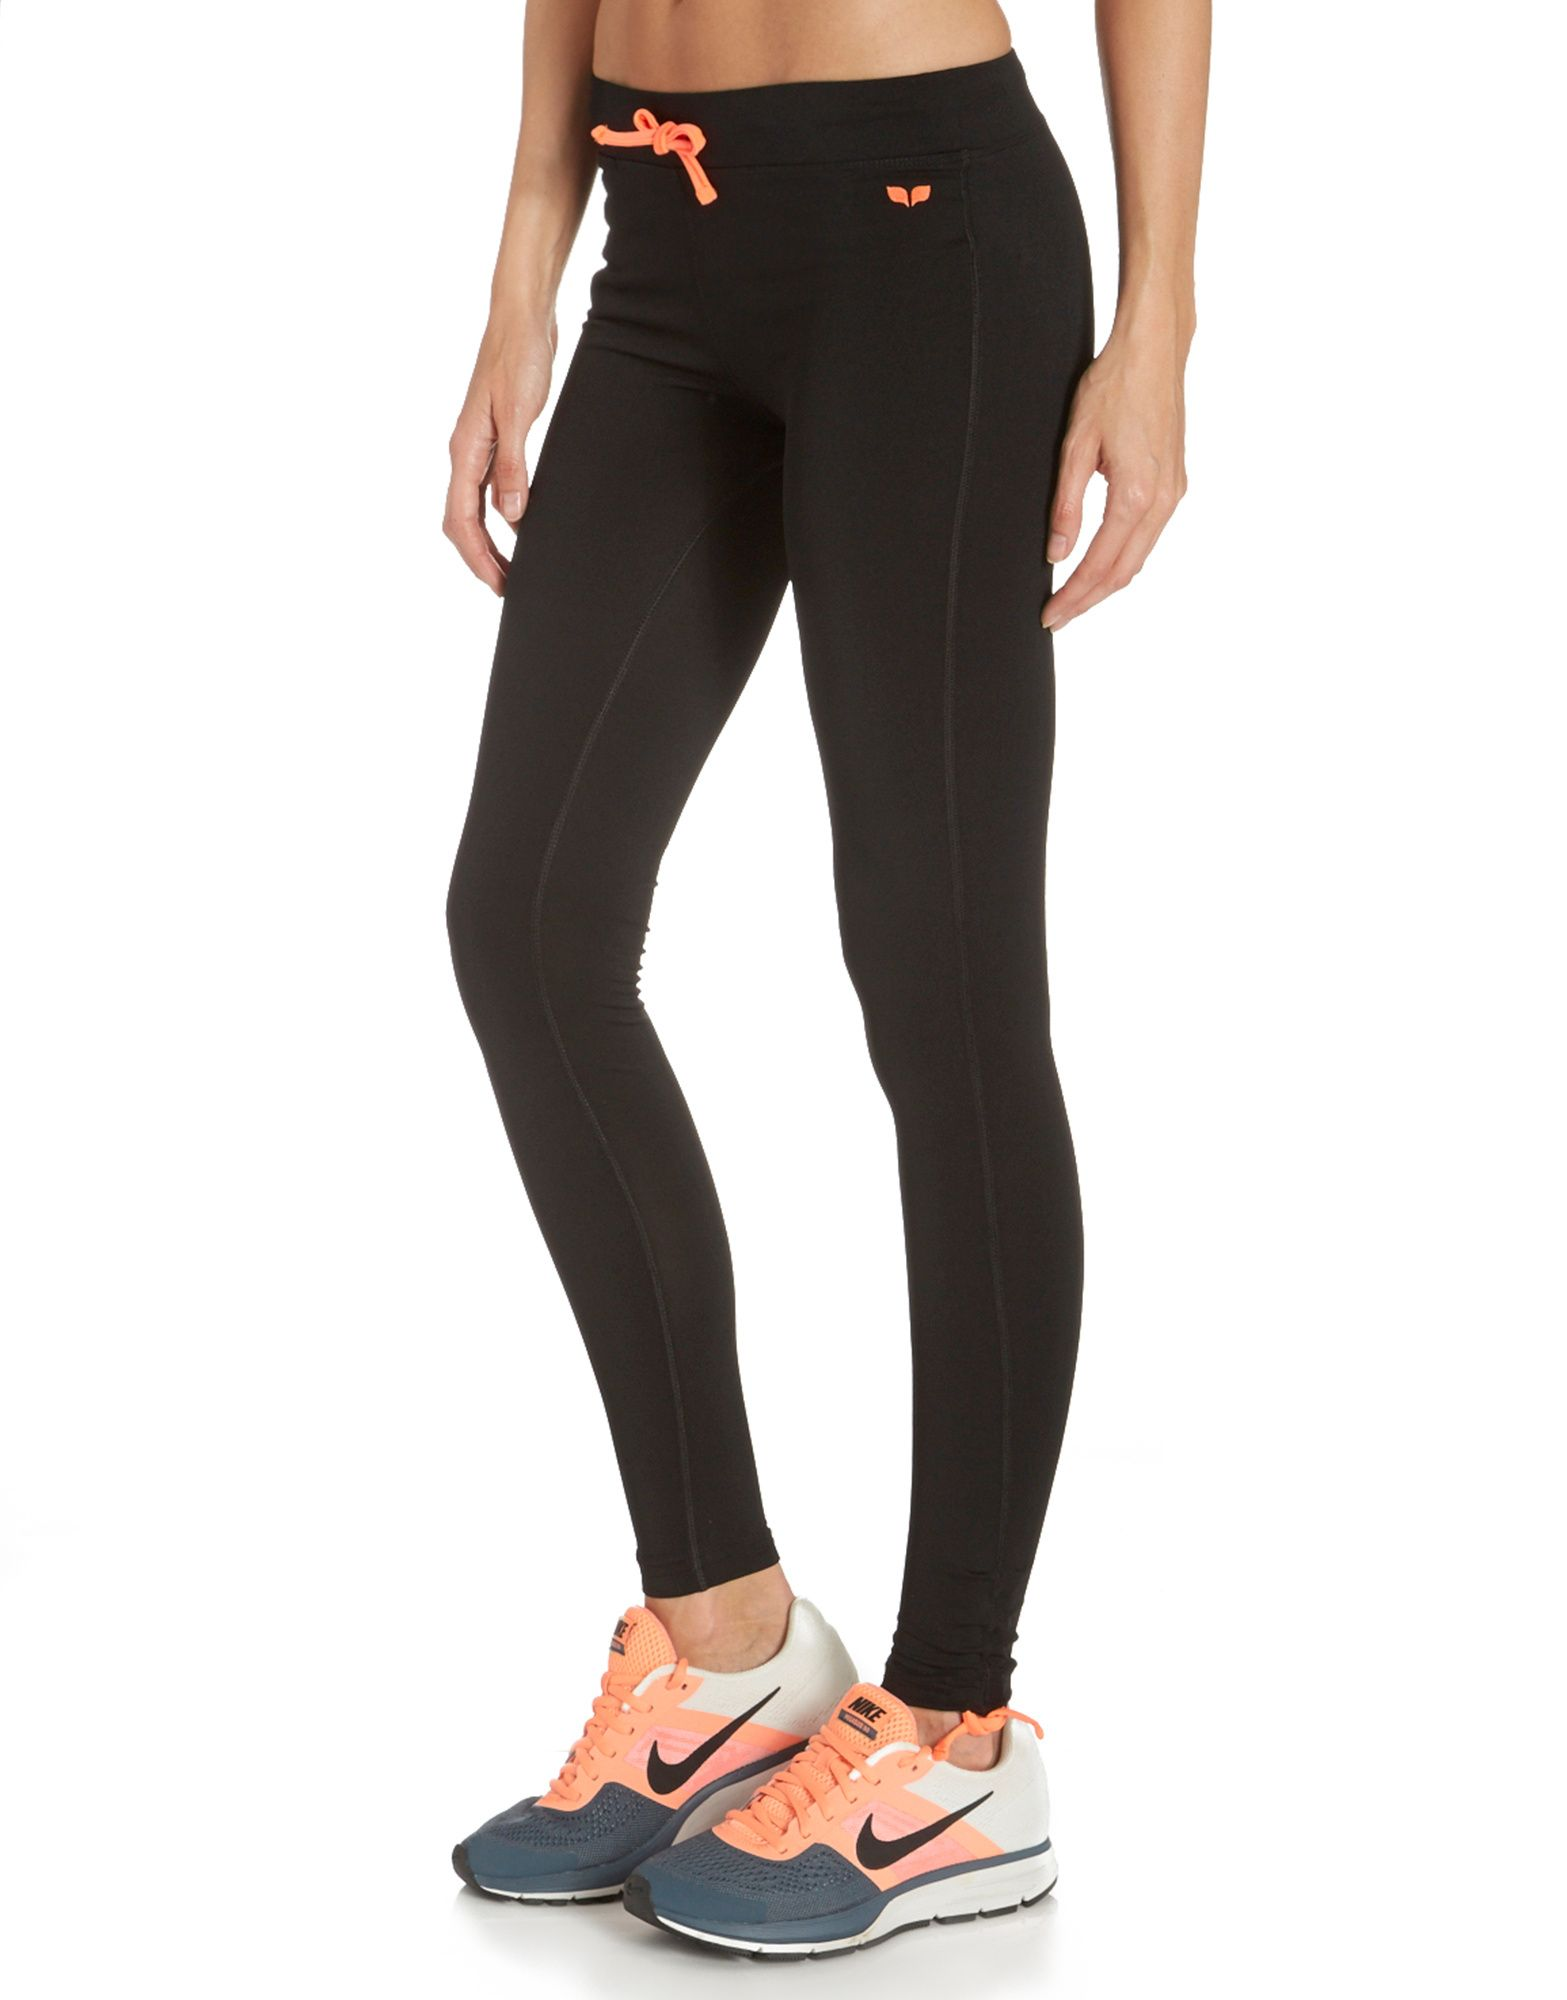 Pure Simple Sport Ruched Tights